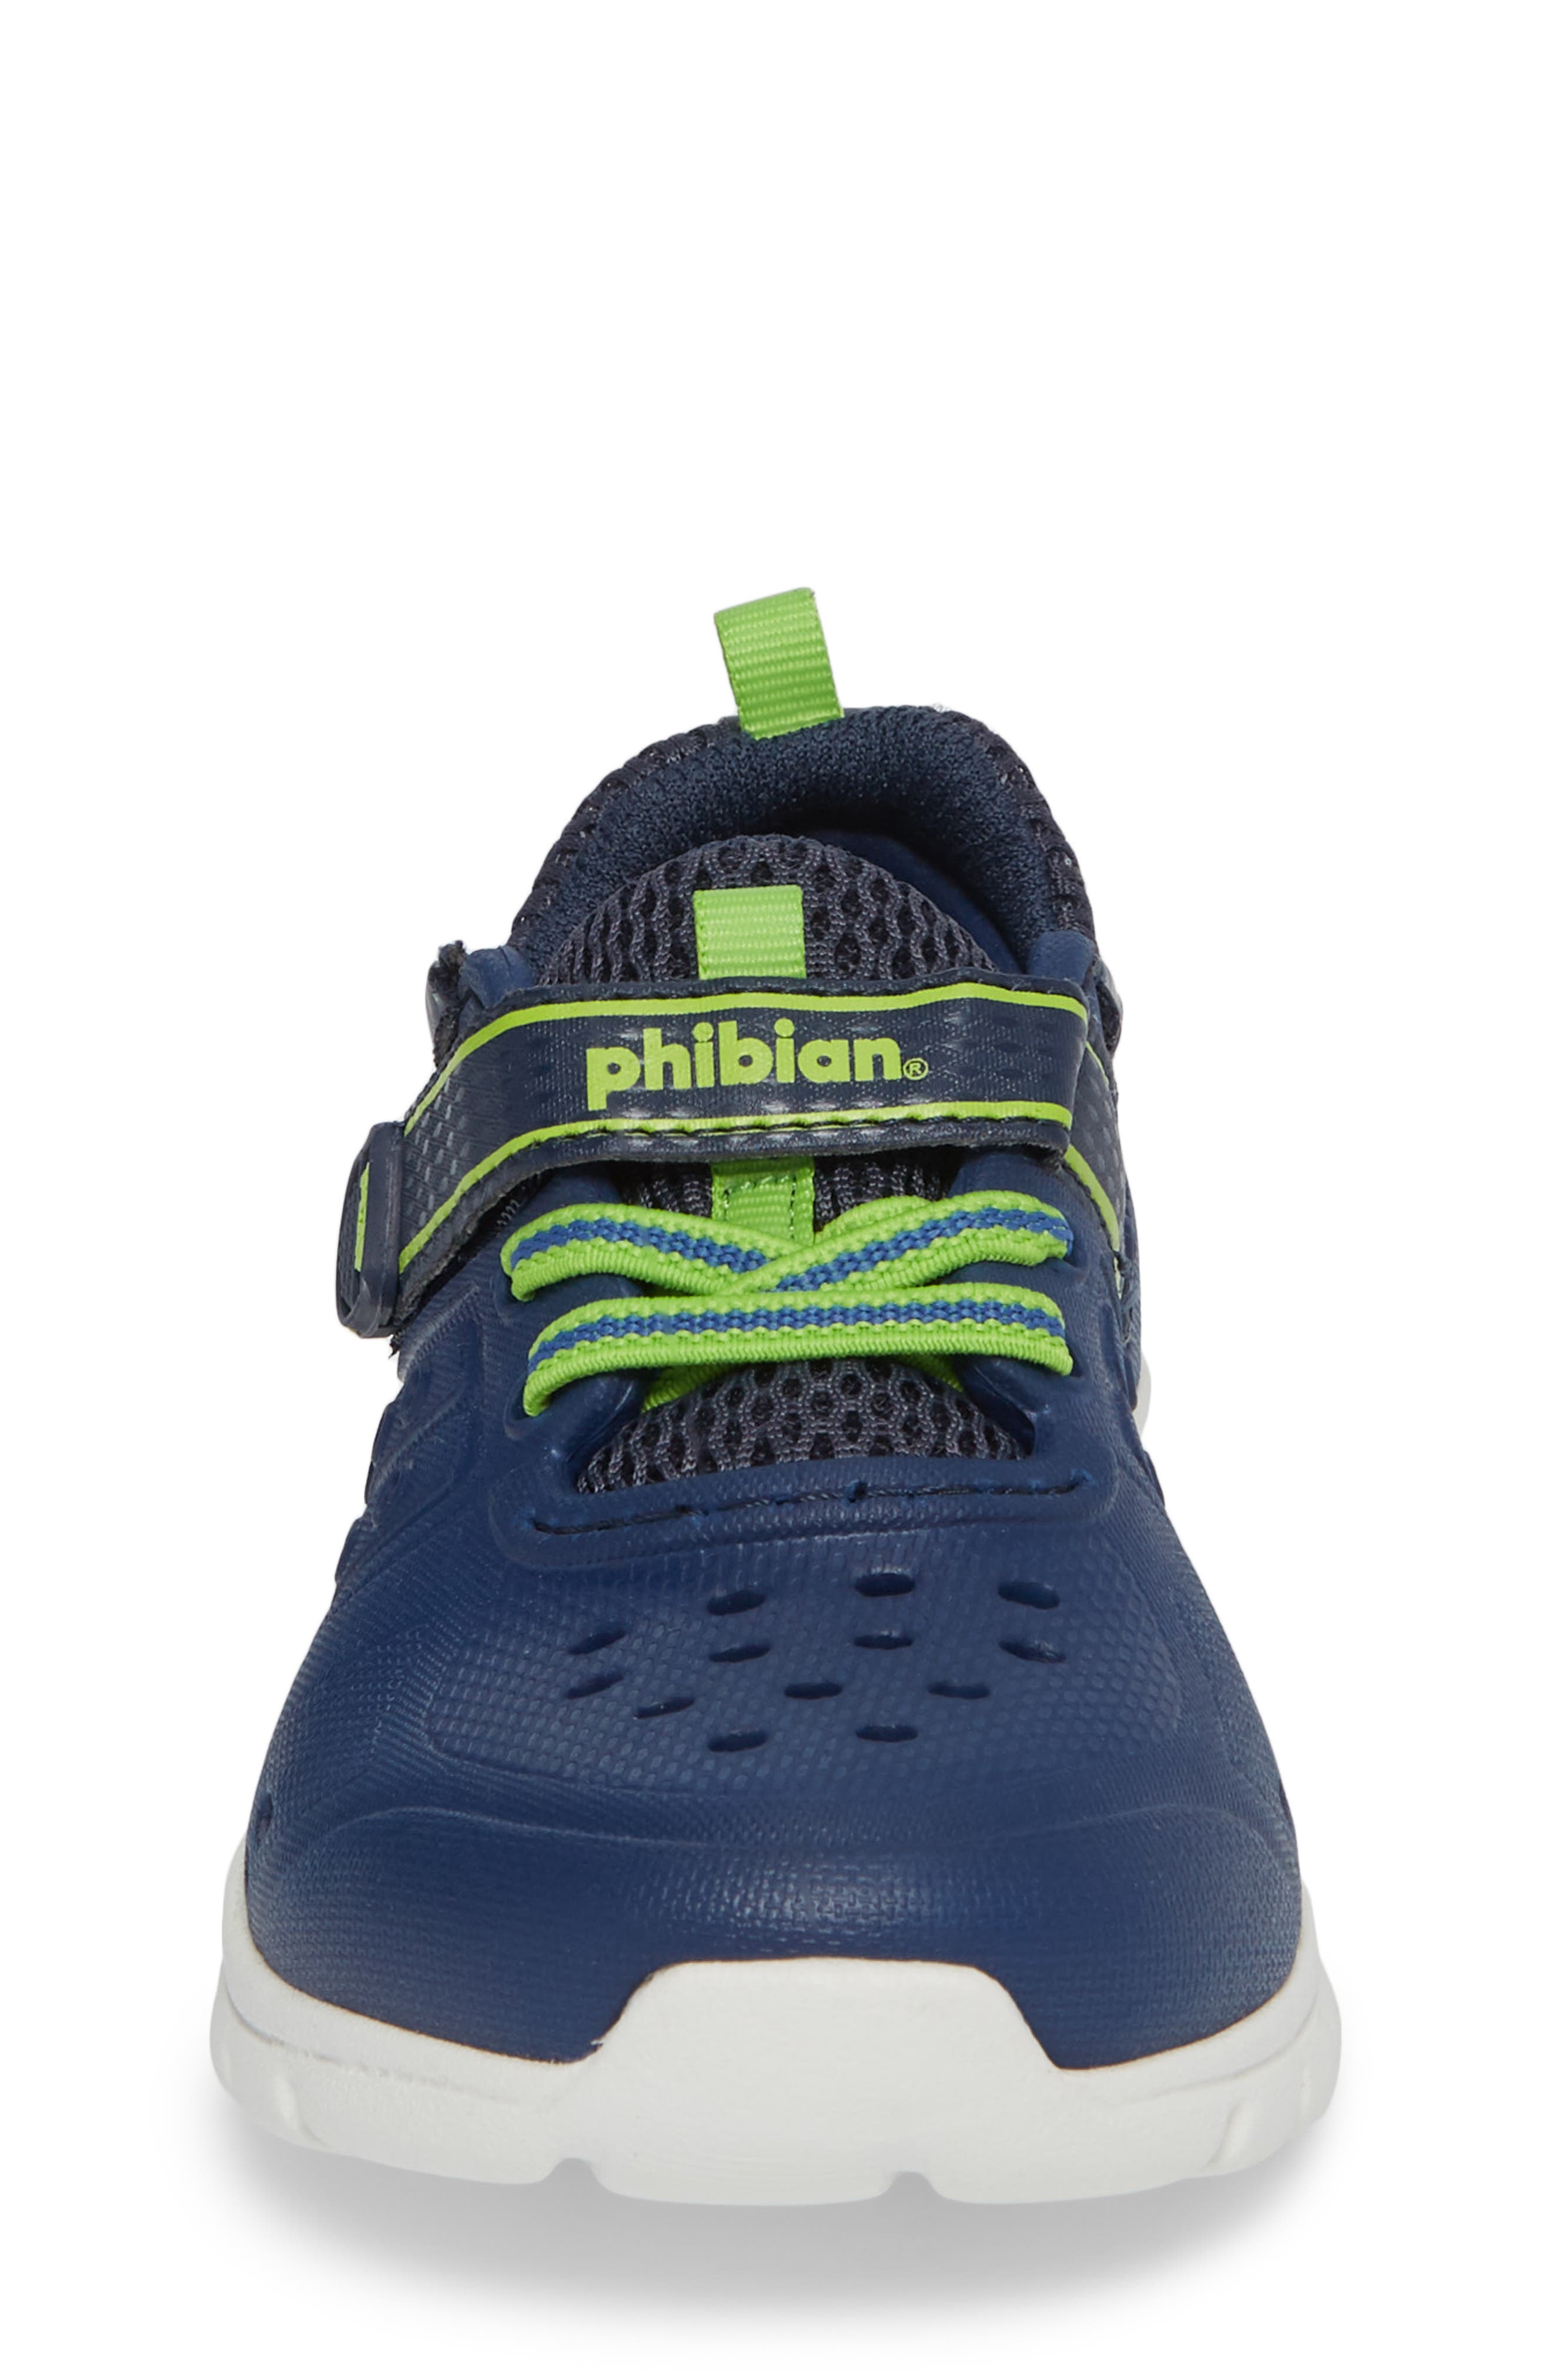 Made2Play<sup>®</sup> Phibian Light-Up Sneaker,                             Alternate thumbnail 4, color,                             NAVY